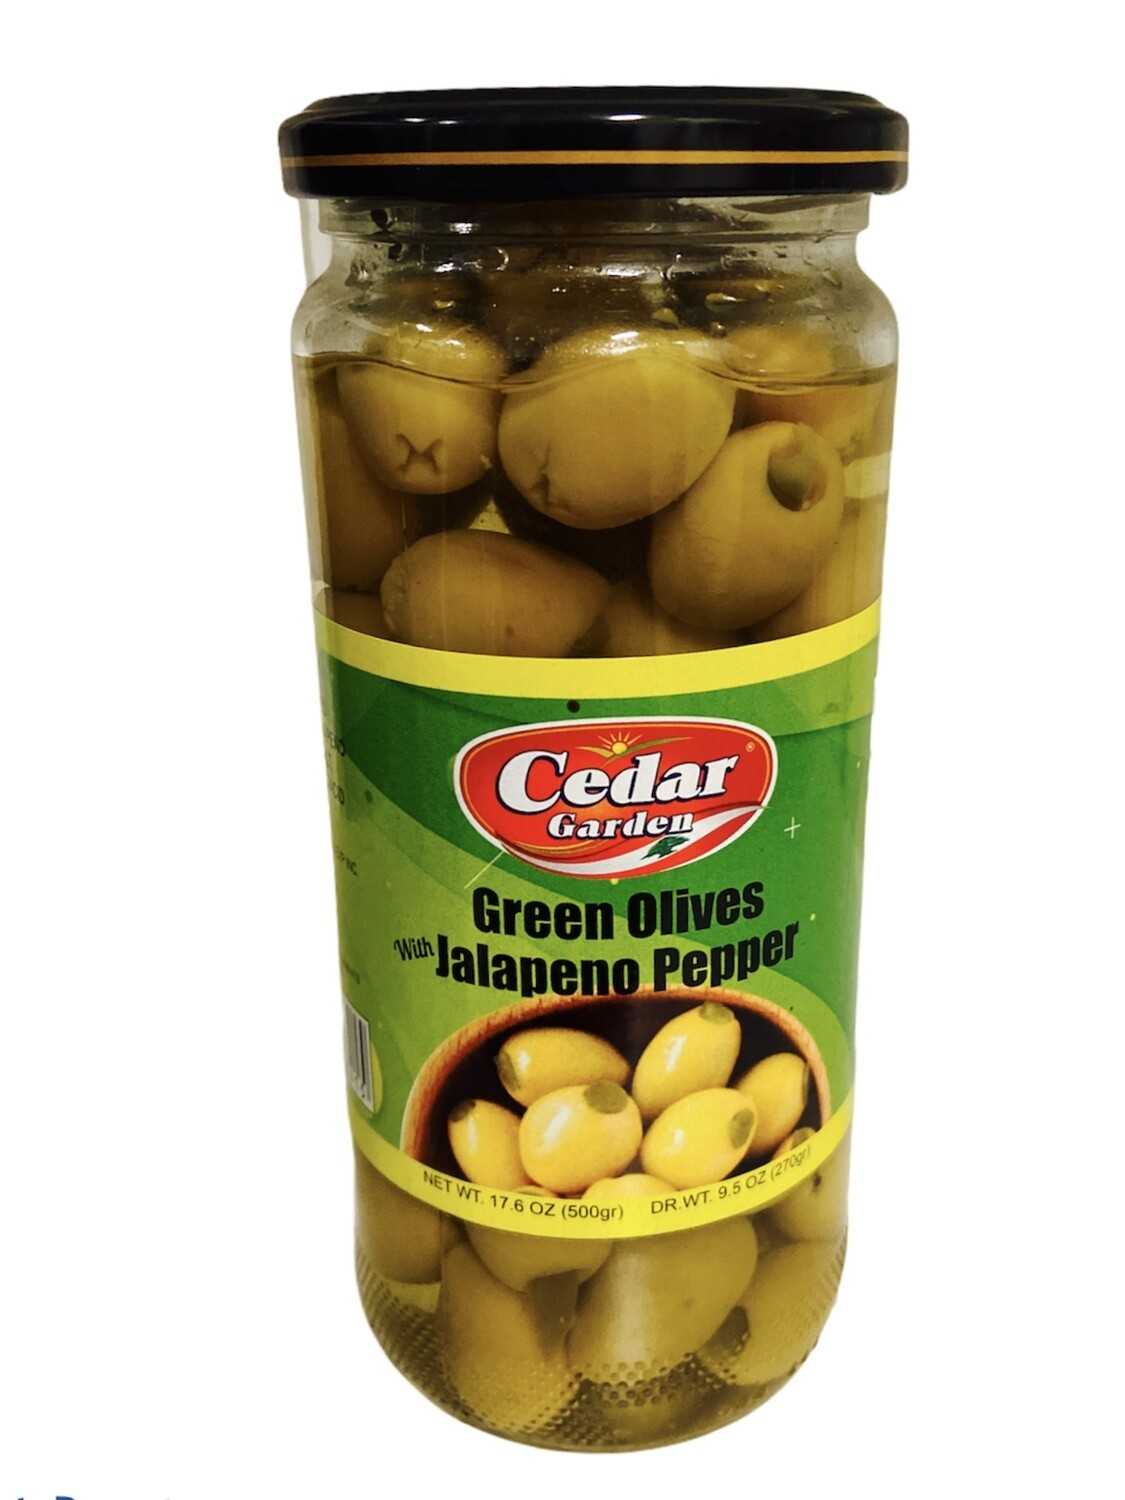 Cedar Garden Green Olives With Jalapeno Peppers